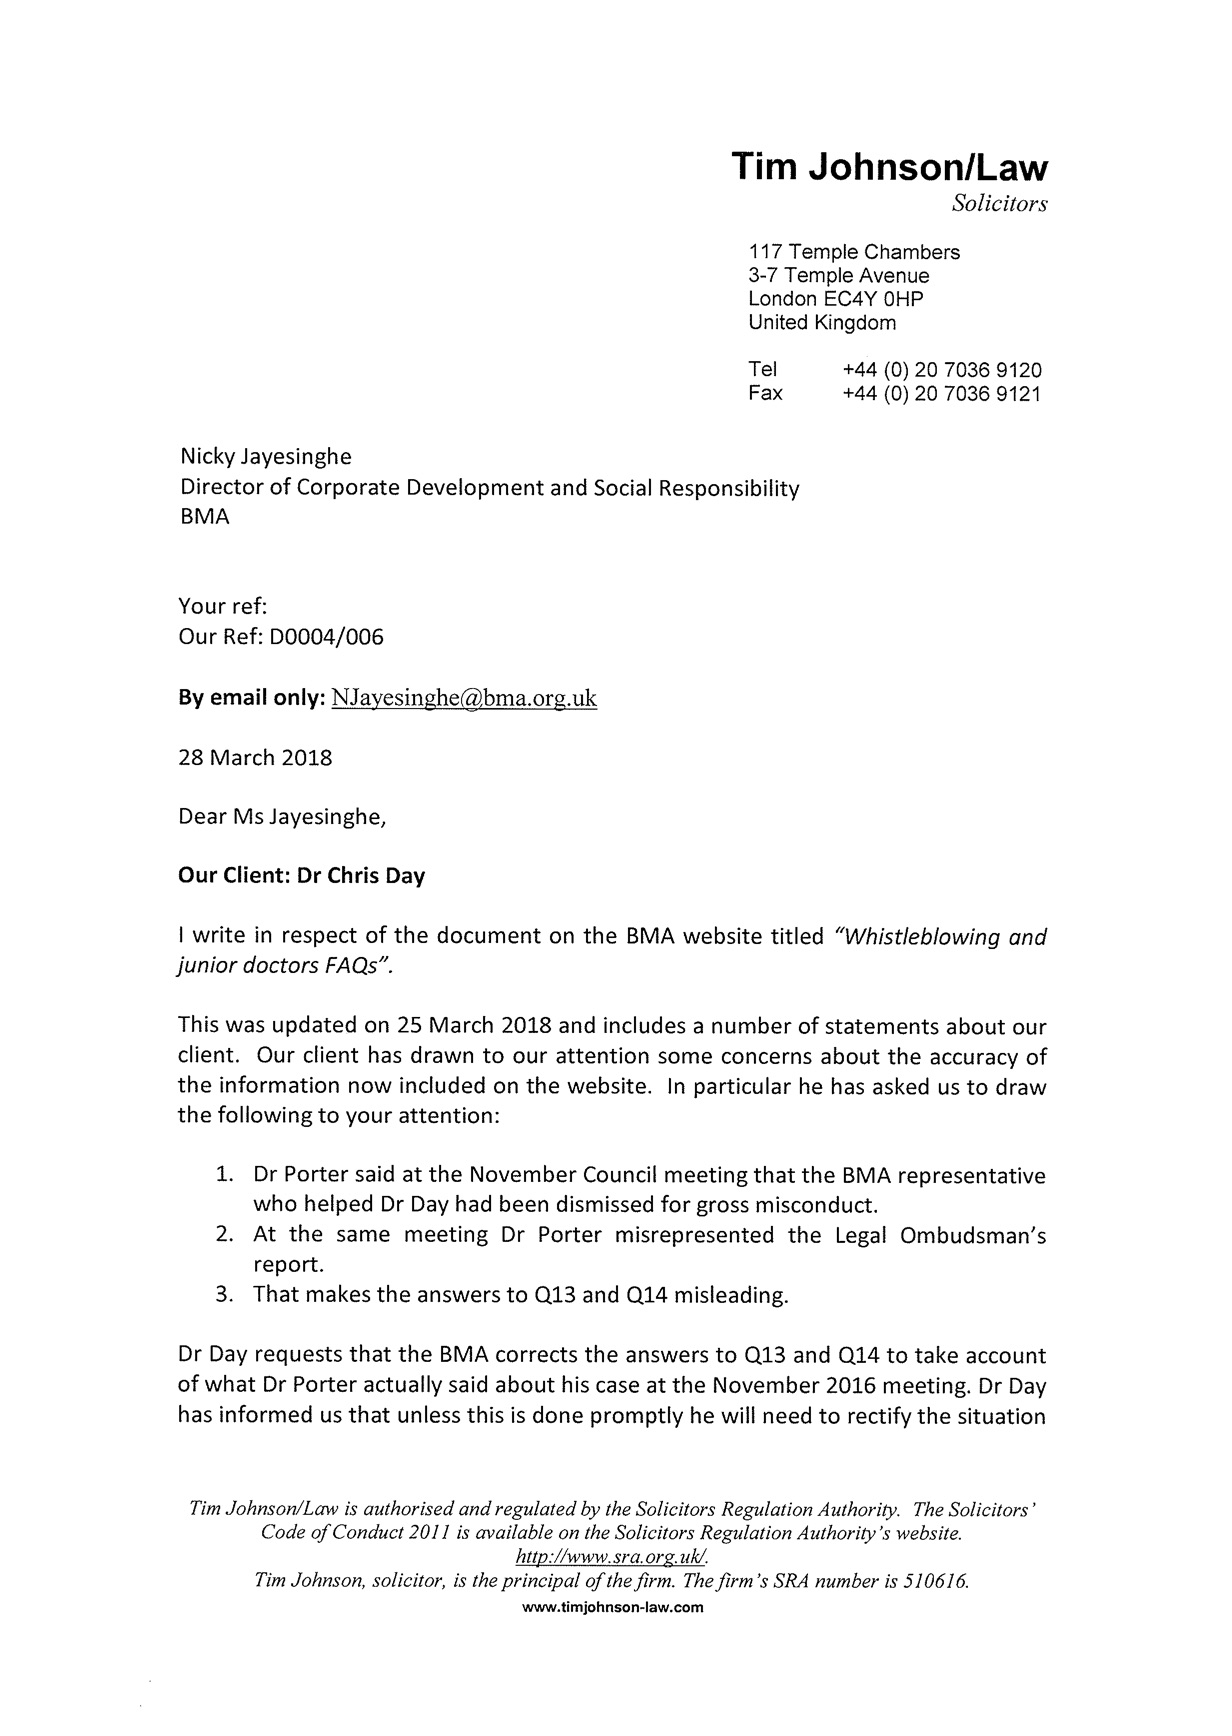 Legal Letter Challenging False Statements From The BMA About Dr Days Whistleblowing Case